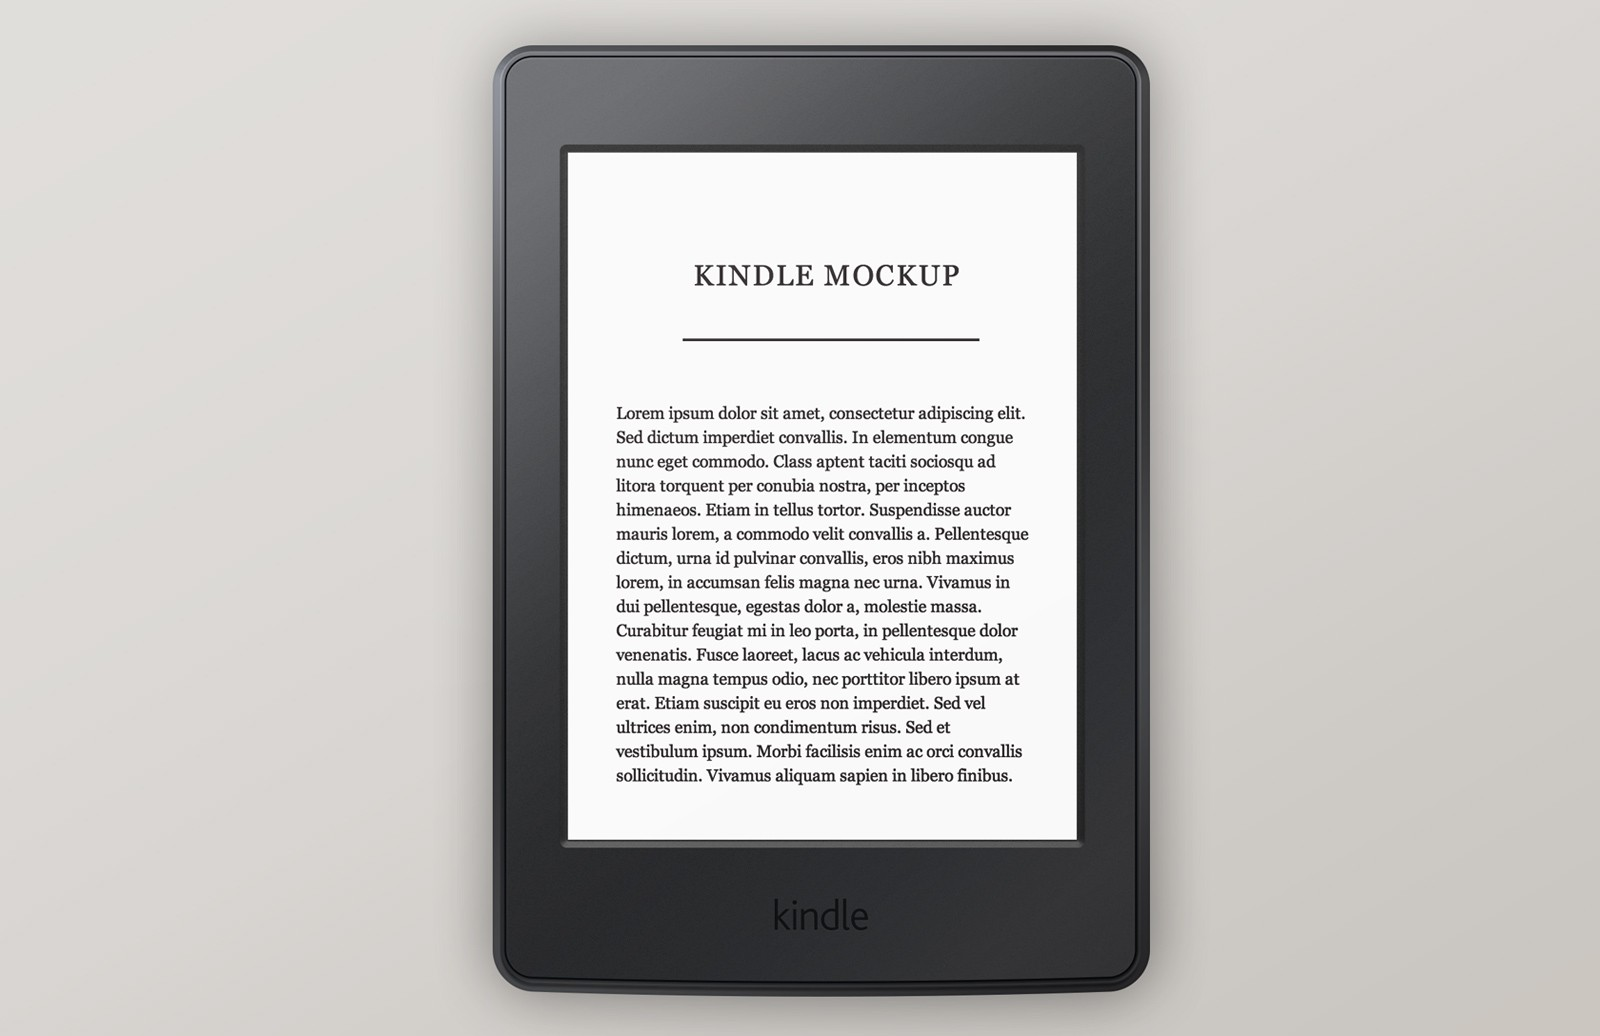 Amazon  Kindle  Paperwhite  Mockup  Preview 1A